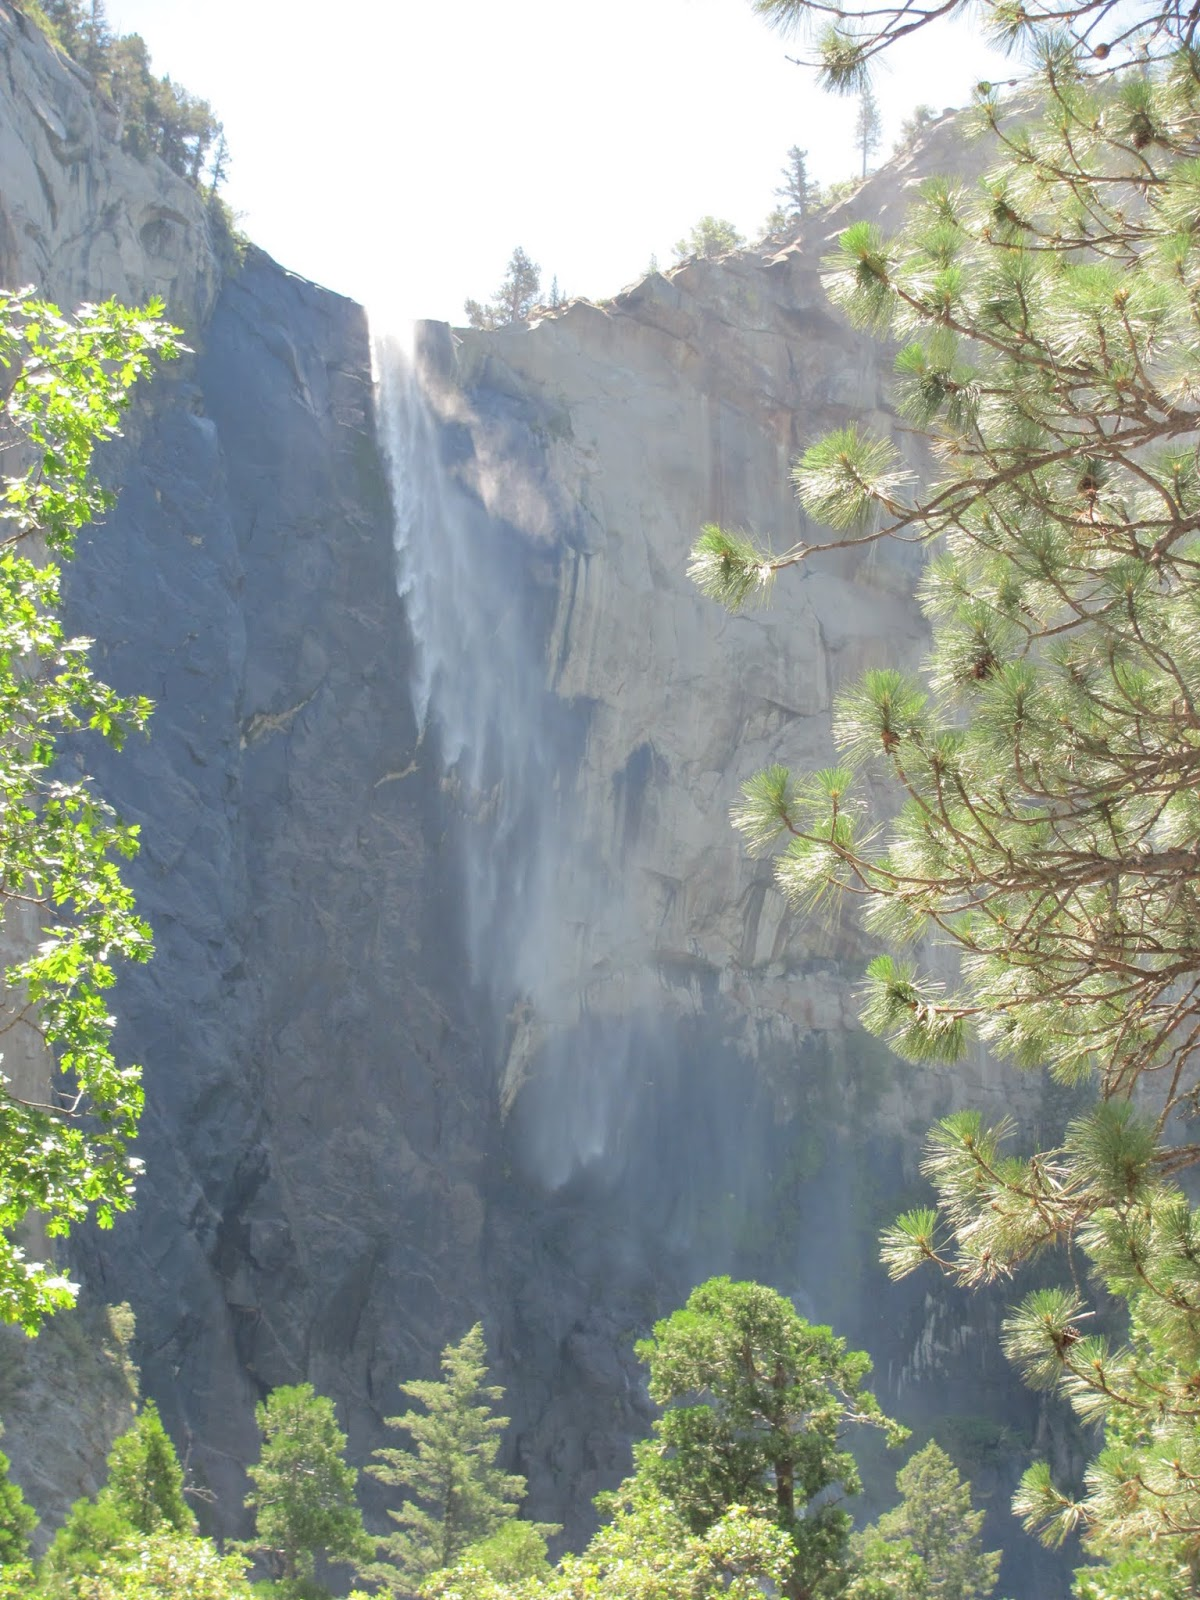 Bridalveil Falls cascade down to the valley floor at Yosemite National Park, California